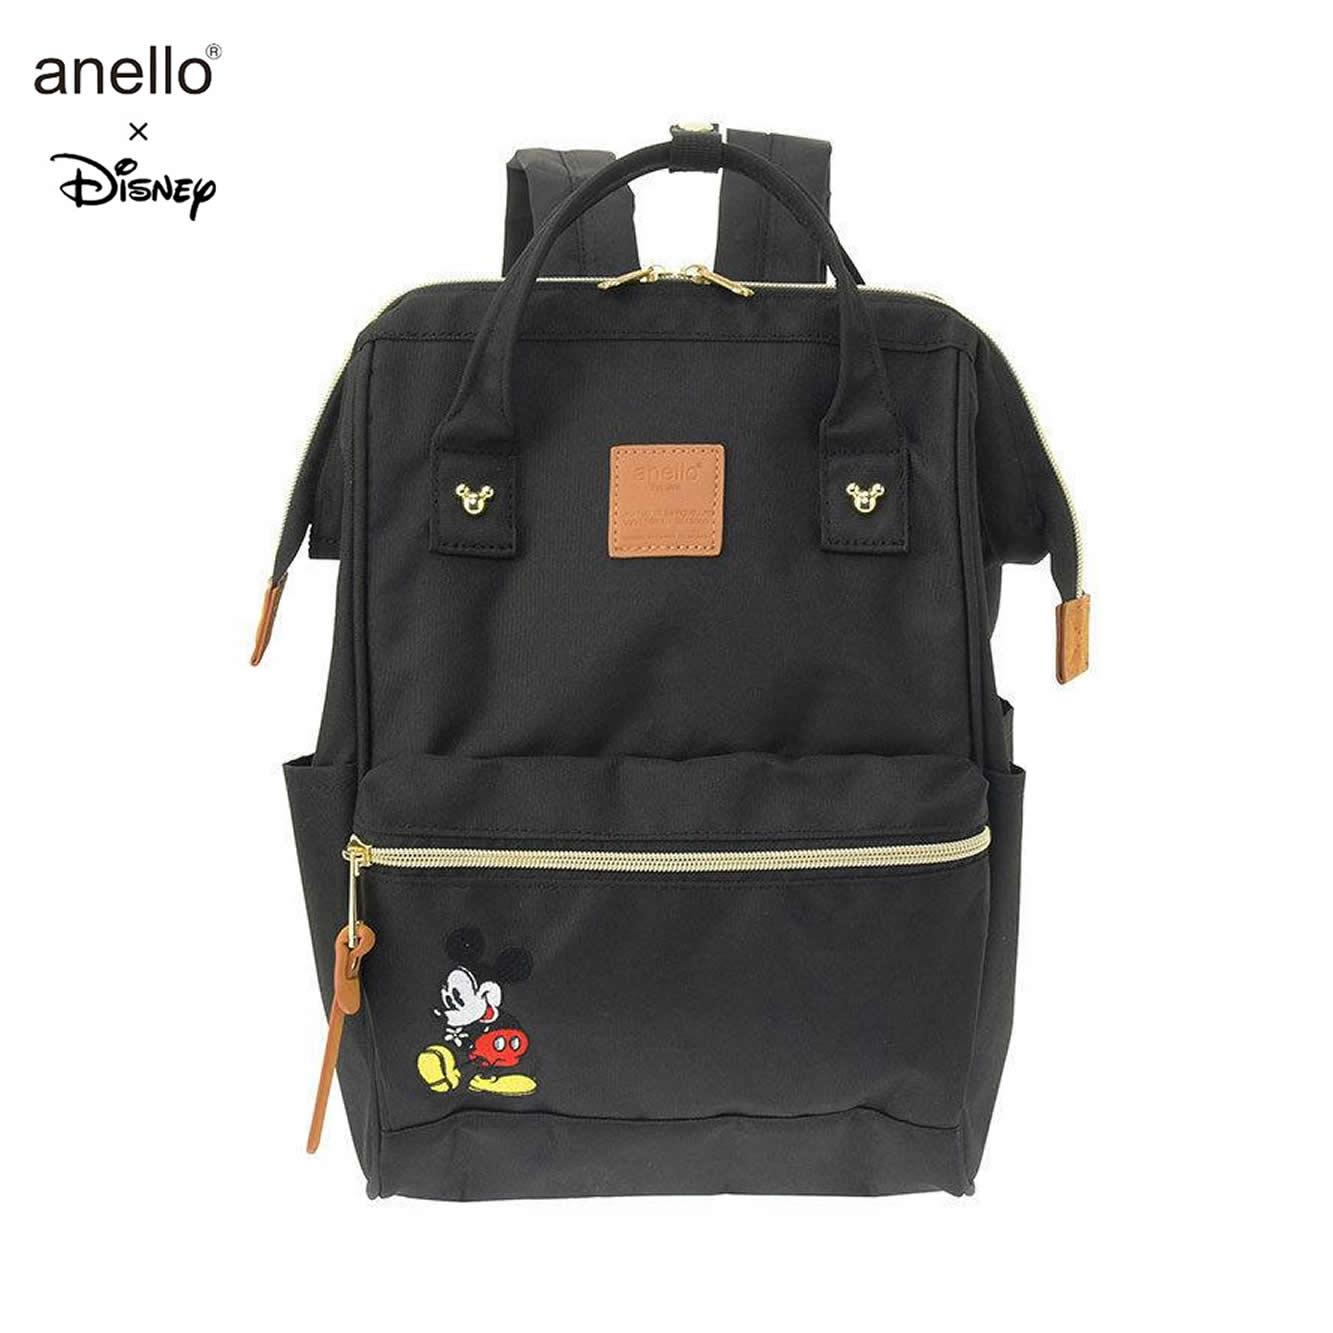 730d24cace0 Buy Brand New Collection of Backpack